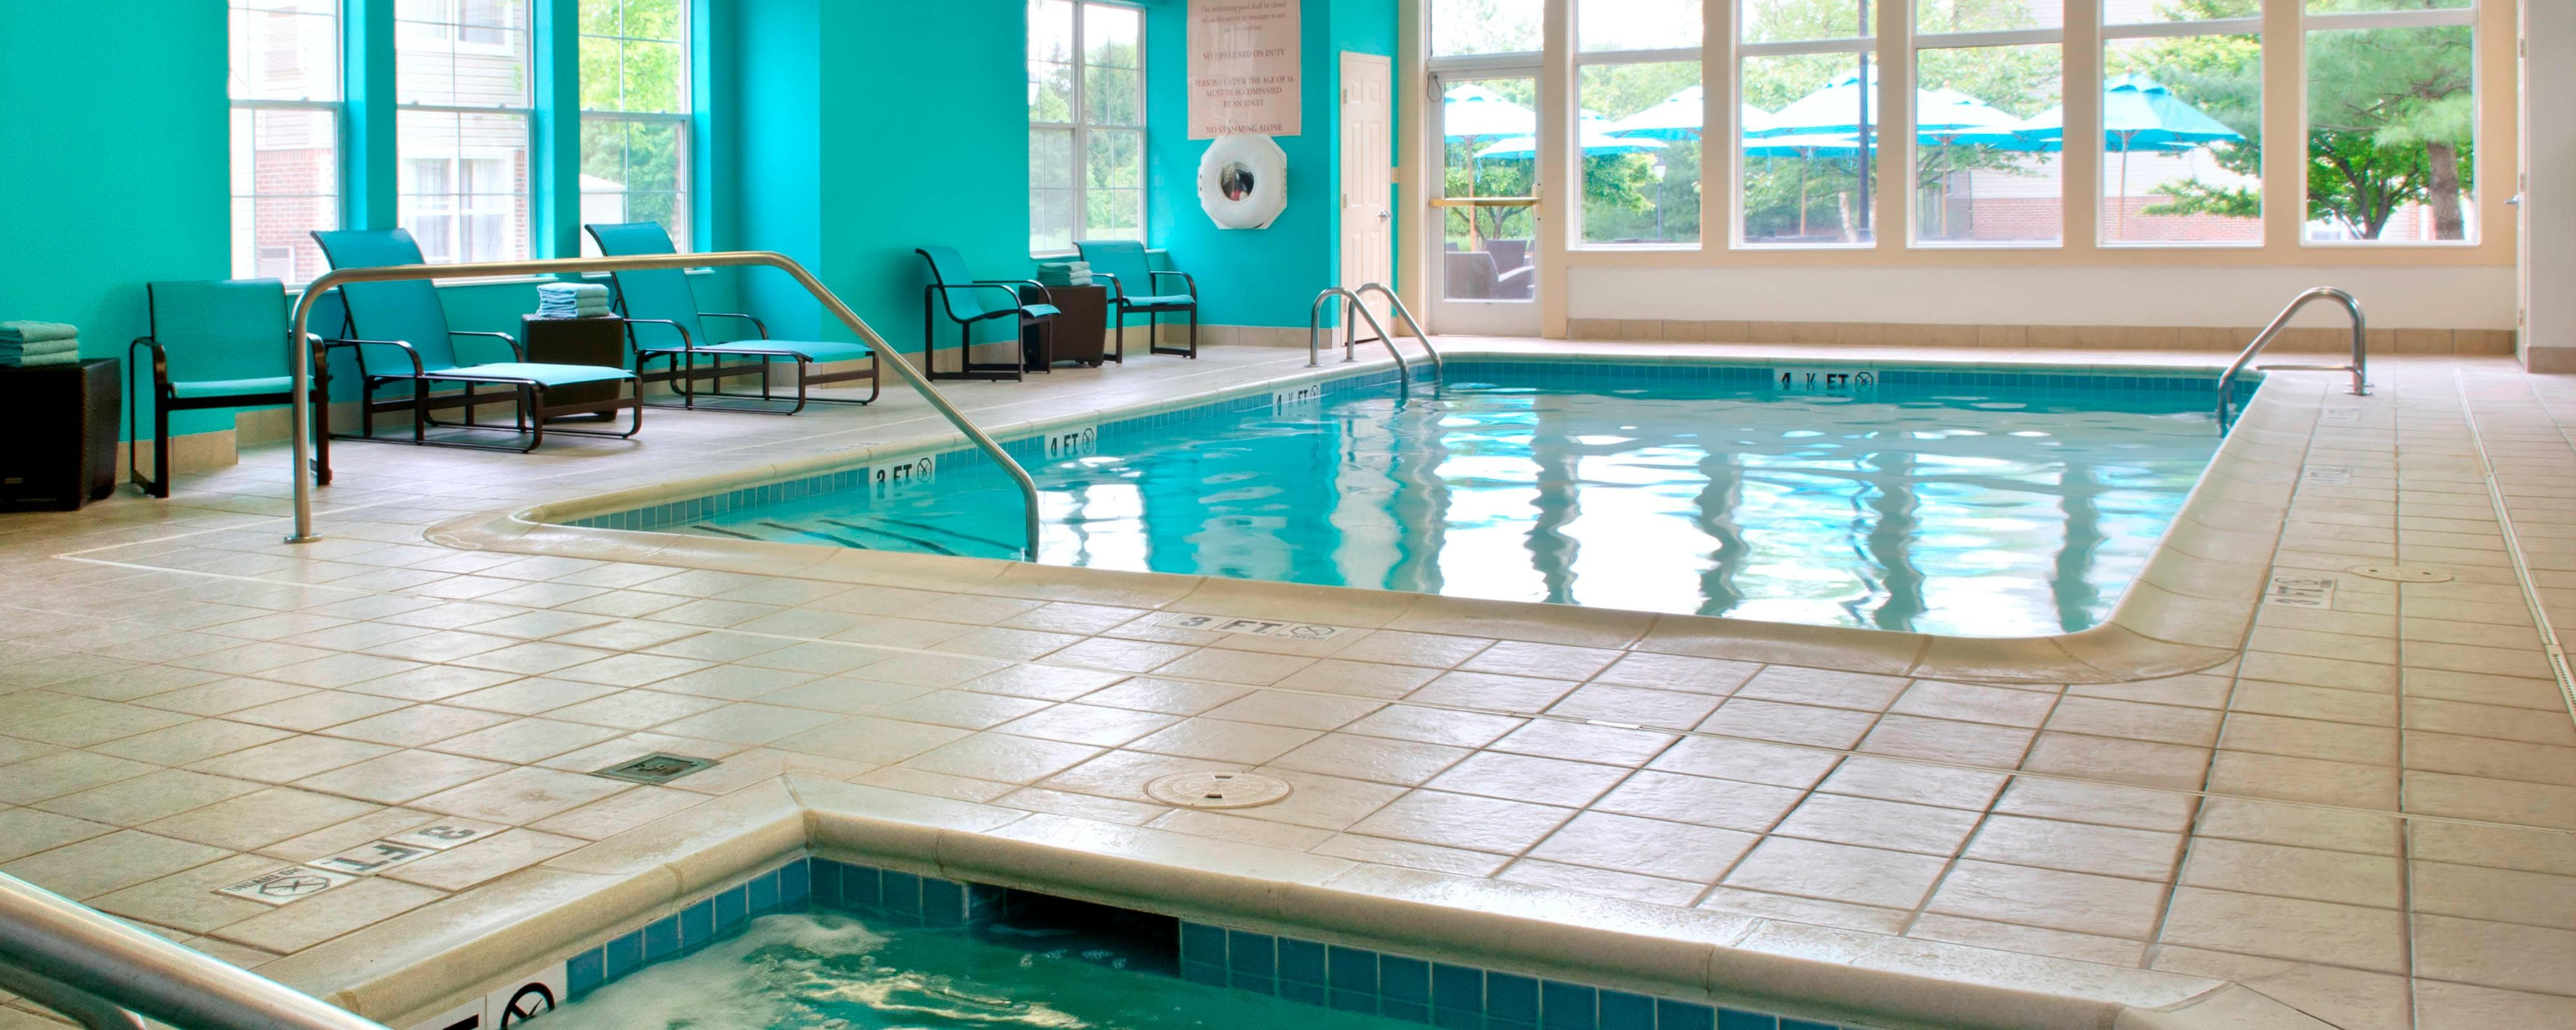 Parsippany NJ Hotel Indoor Pool